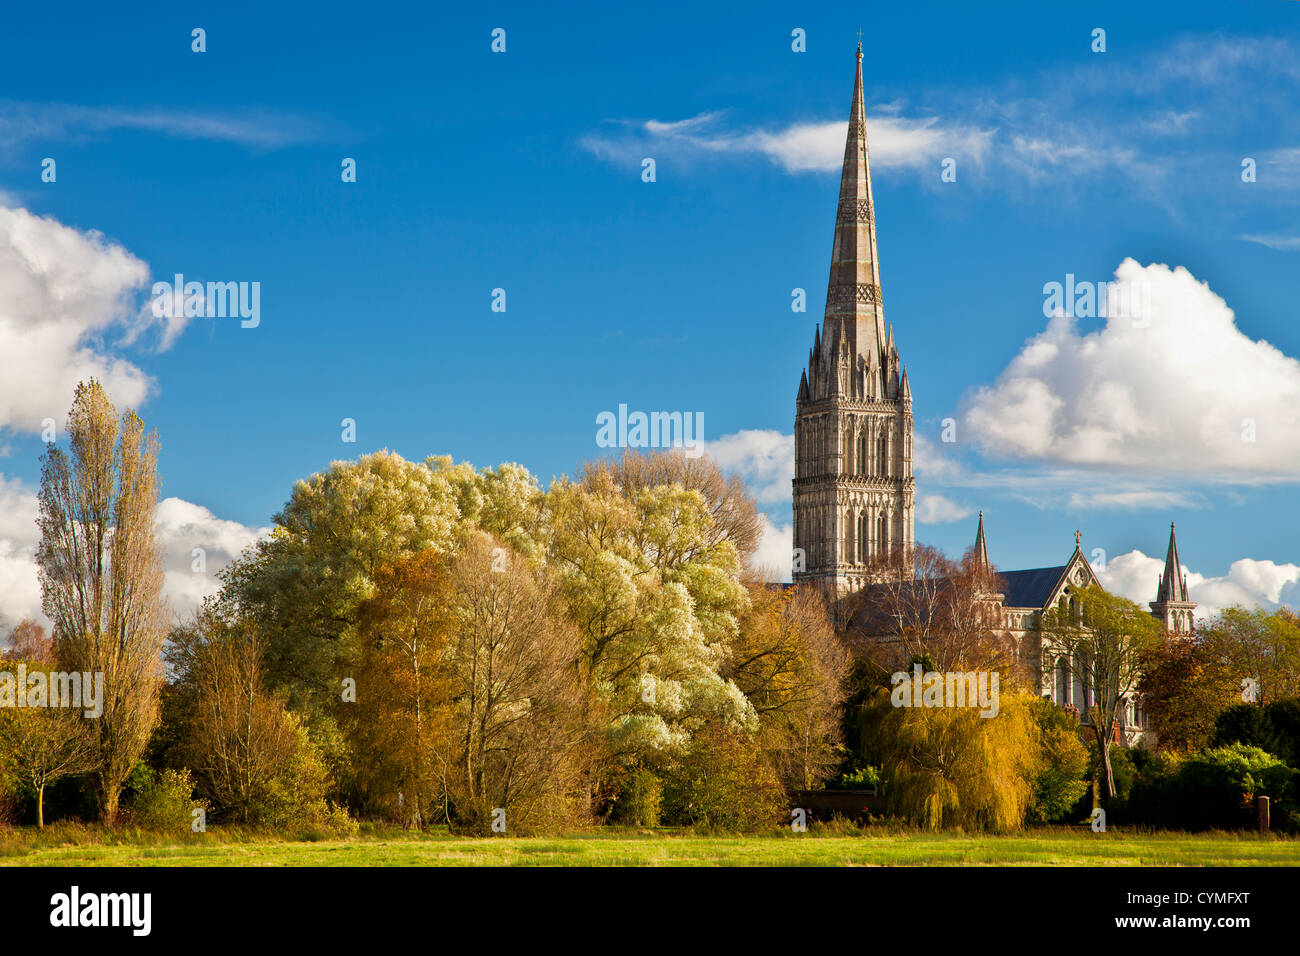 An autumn view of the spire of medieval Salisbury Cathedral, Wiltshire, England, UK across the Harnham water meadows. - Stock Image